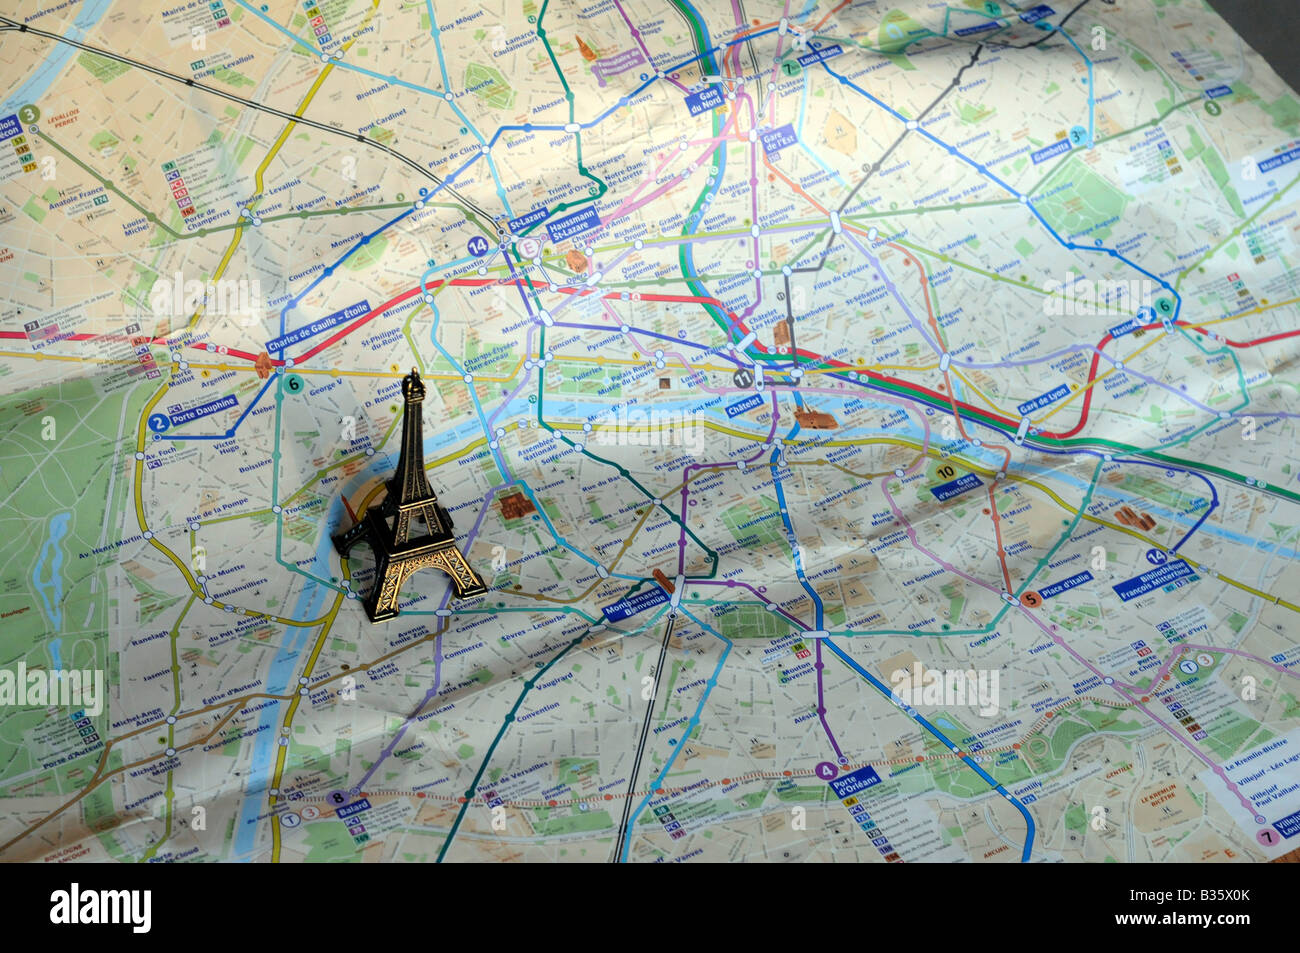 a smallscale model of the eiffel tower standing on a map